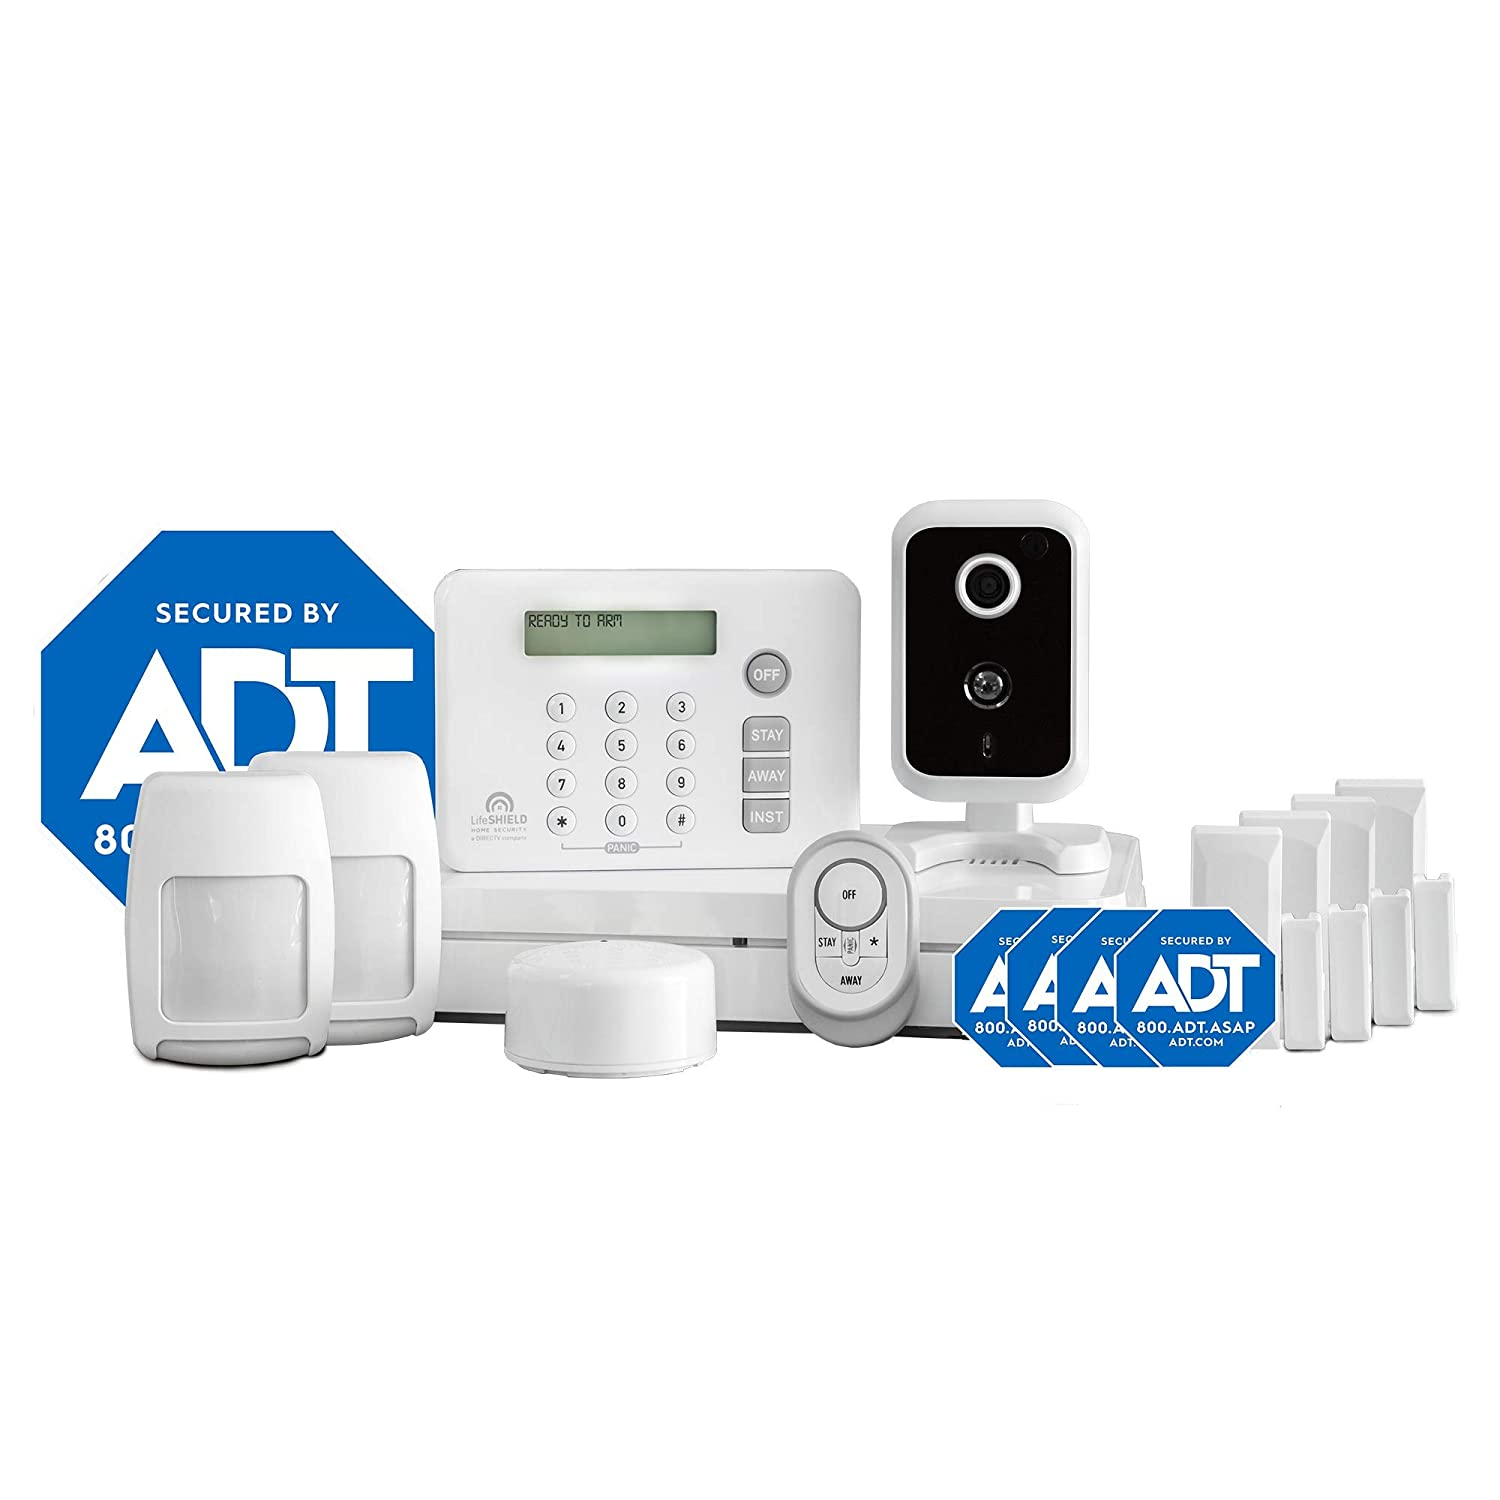 Adt Home Security Systems >> Lifeshield An Adt Company 13 Piece Easy Diy Smart Home Security System Optional 24 7 Monitoring Smart Camera No Contract Wi Fi Enabled